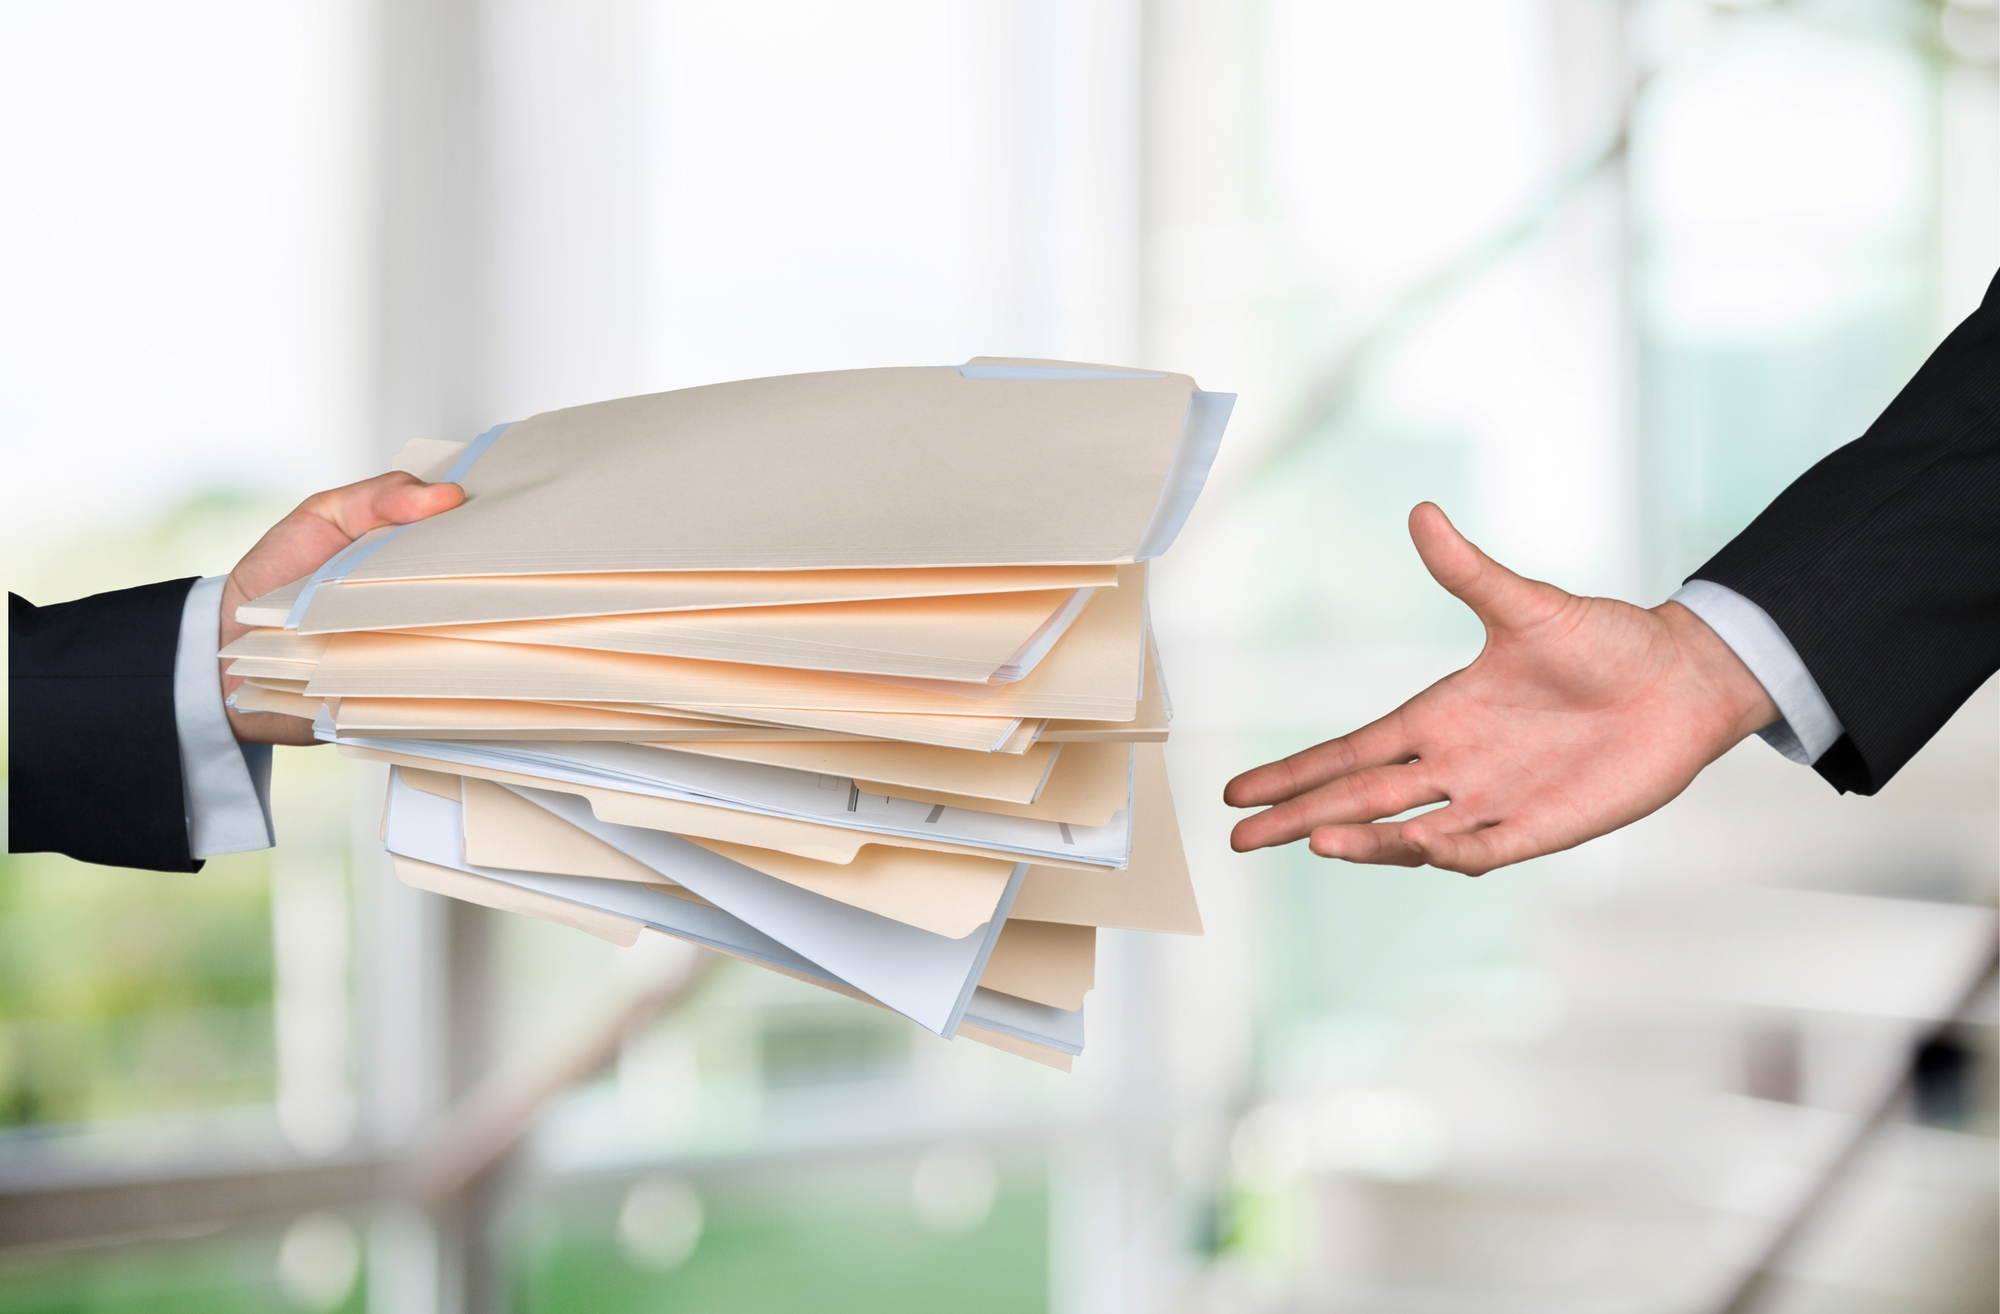 Close-up of a person's hand holding a large stack of folders, passing them to another person wearing a suit.